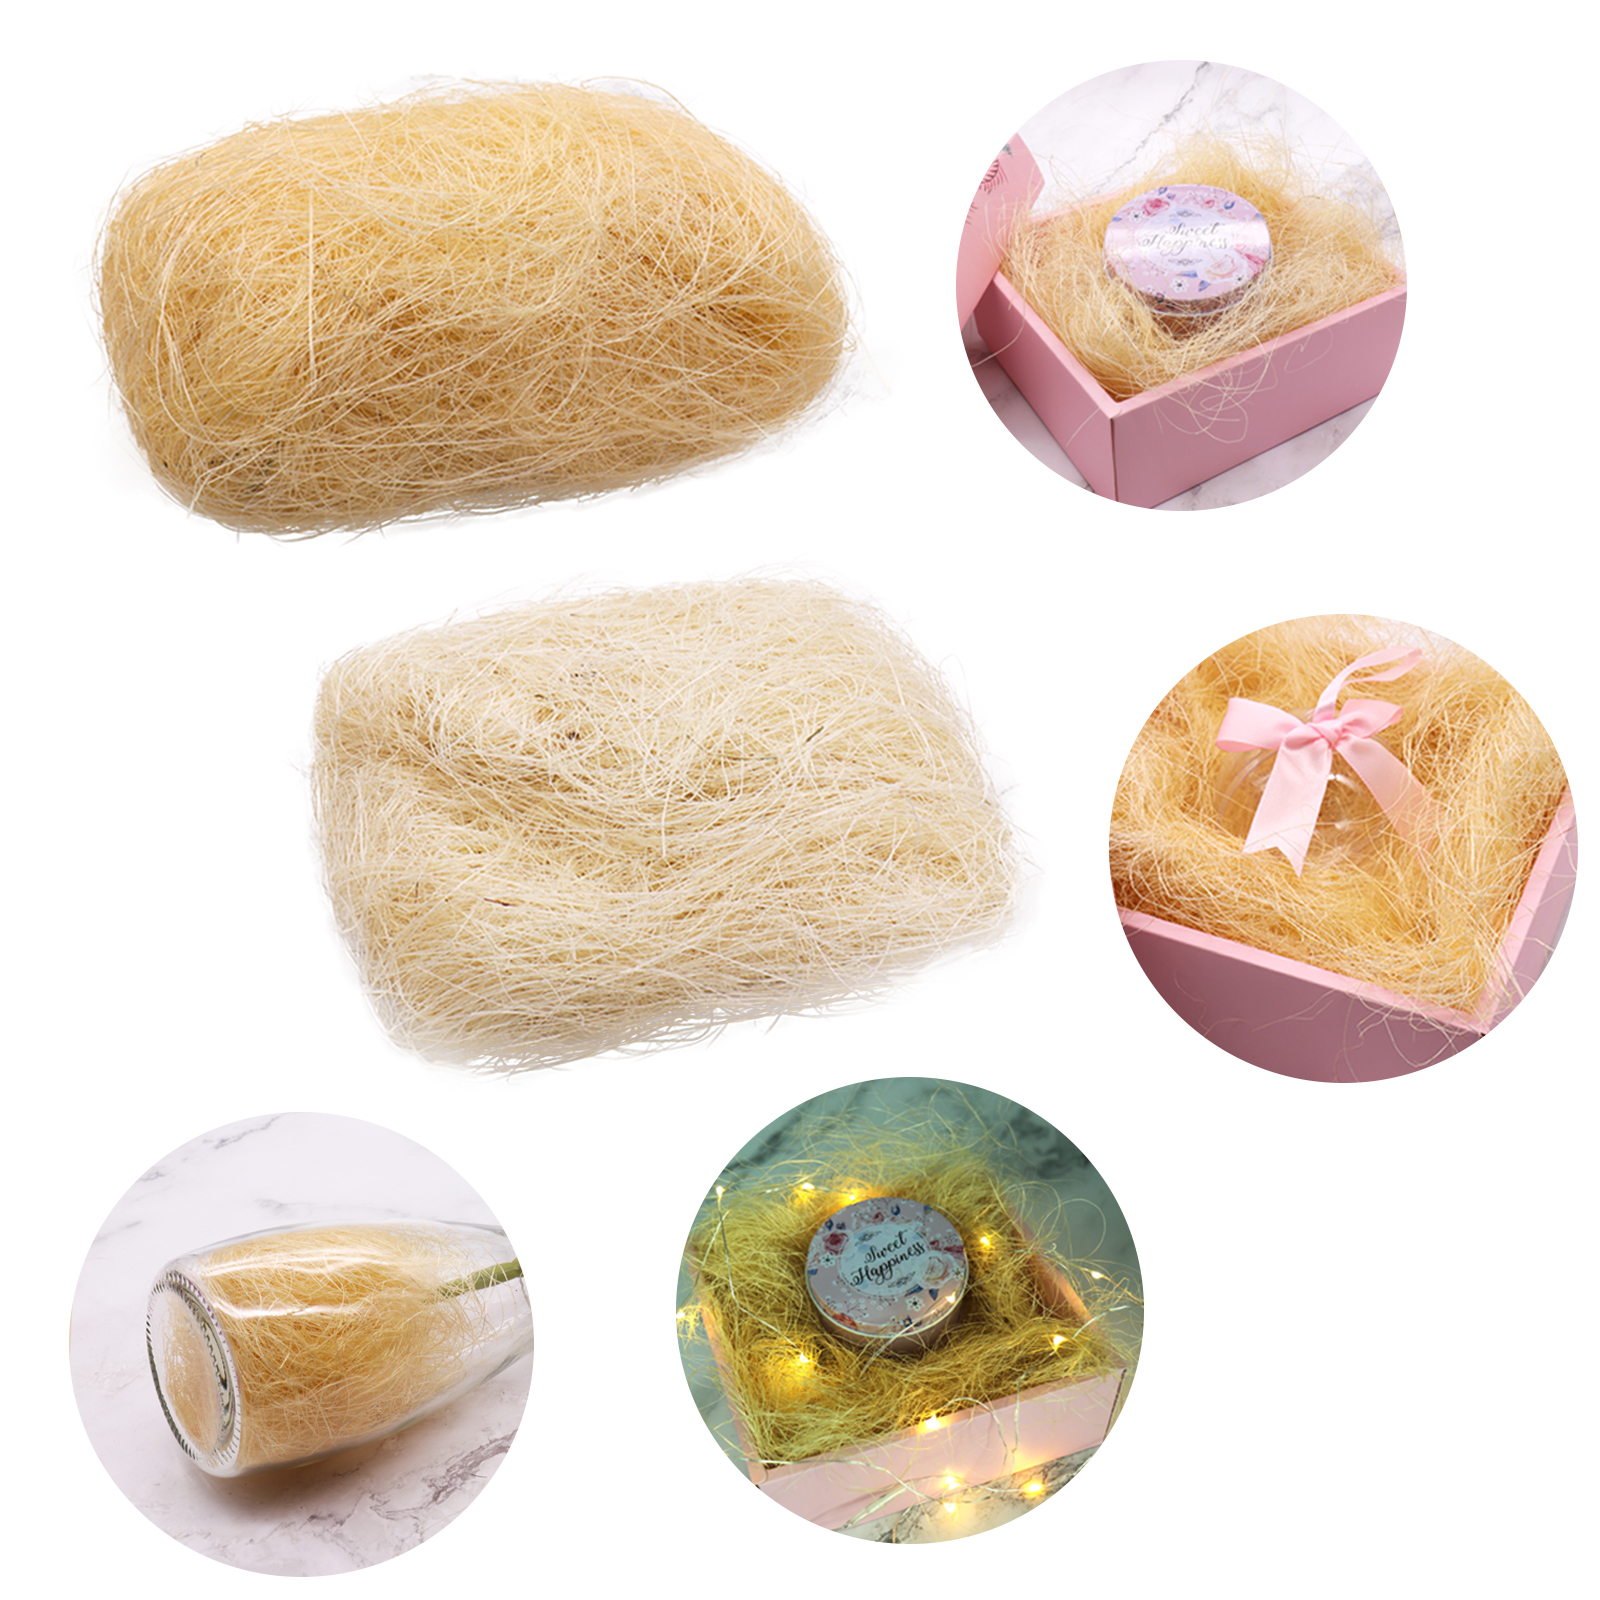 30g/pack Natural Hemp Sisal Gift Box DIY Decor/Jewelry Packaging Filling Material Wedding Gift Filler Packing Material Supplies